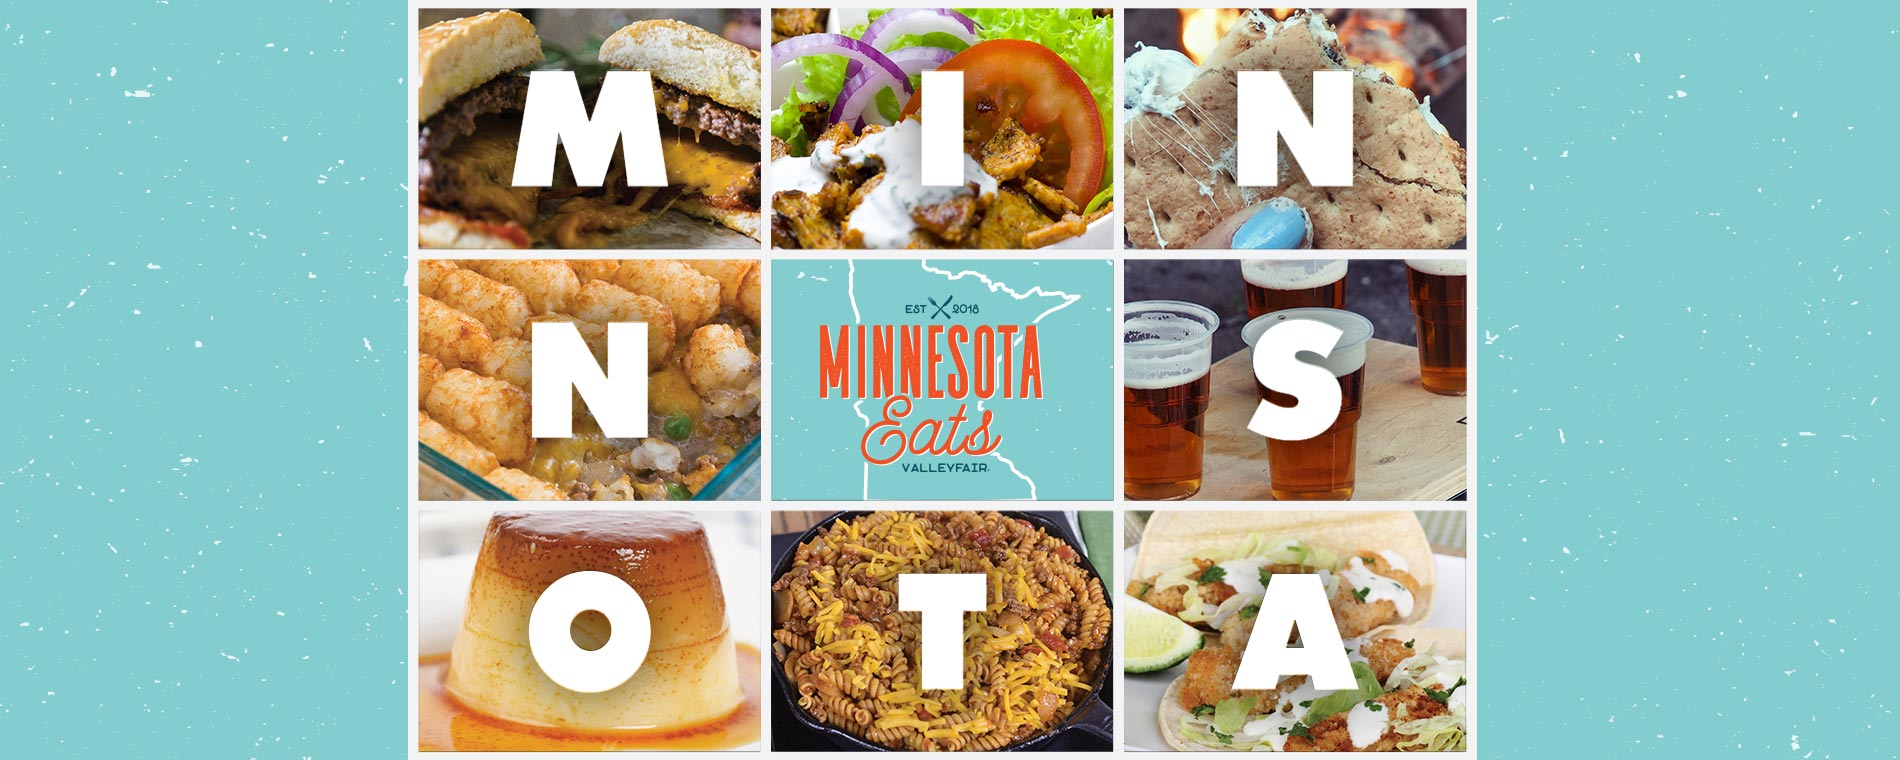 Minnesota Eats Food Festival at Valleyfair